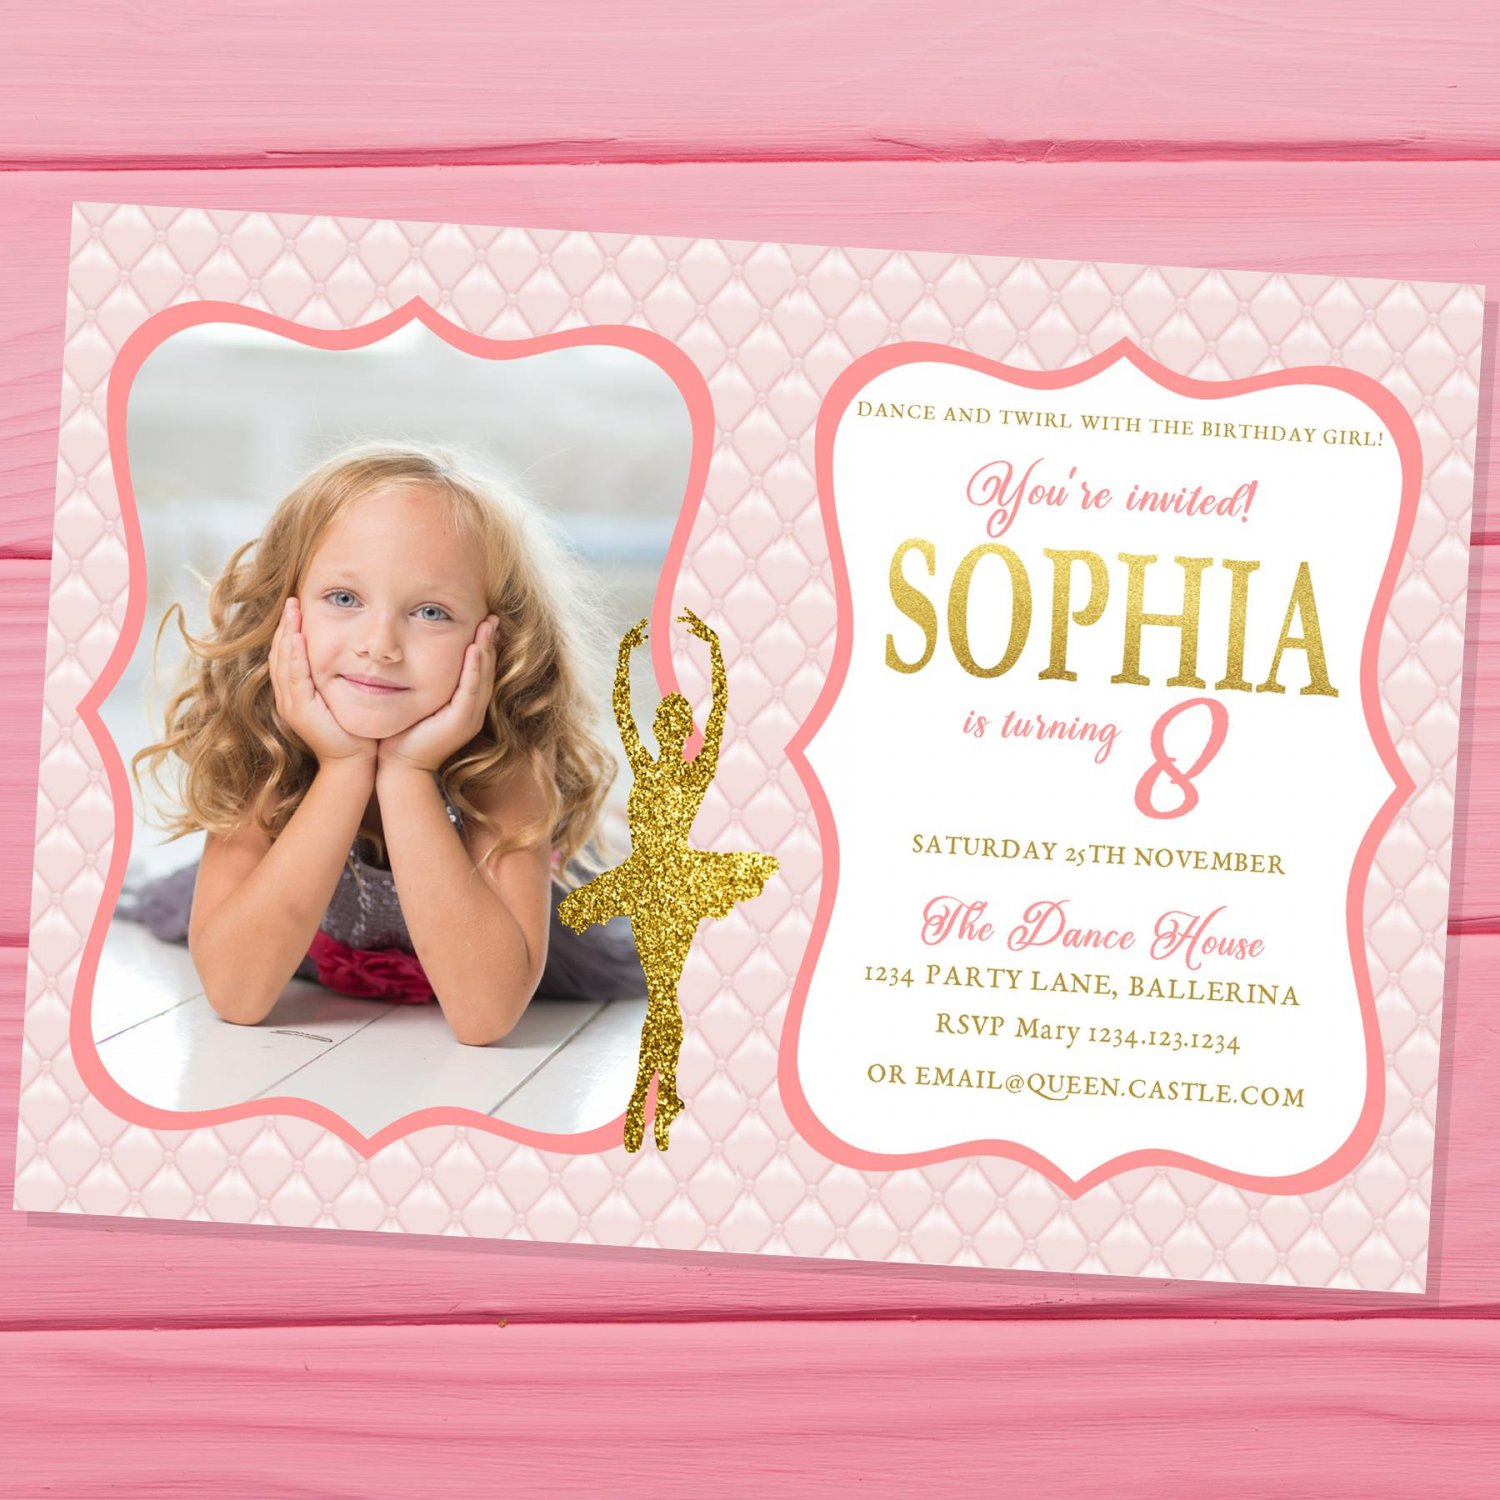 Ballerina Invitation Design 1 with Photo Princess Pink Gold Glitters Elegant Ballet